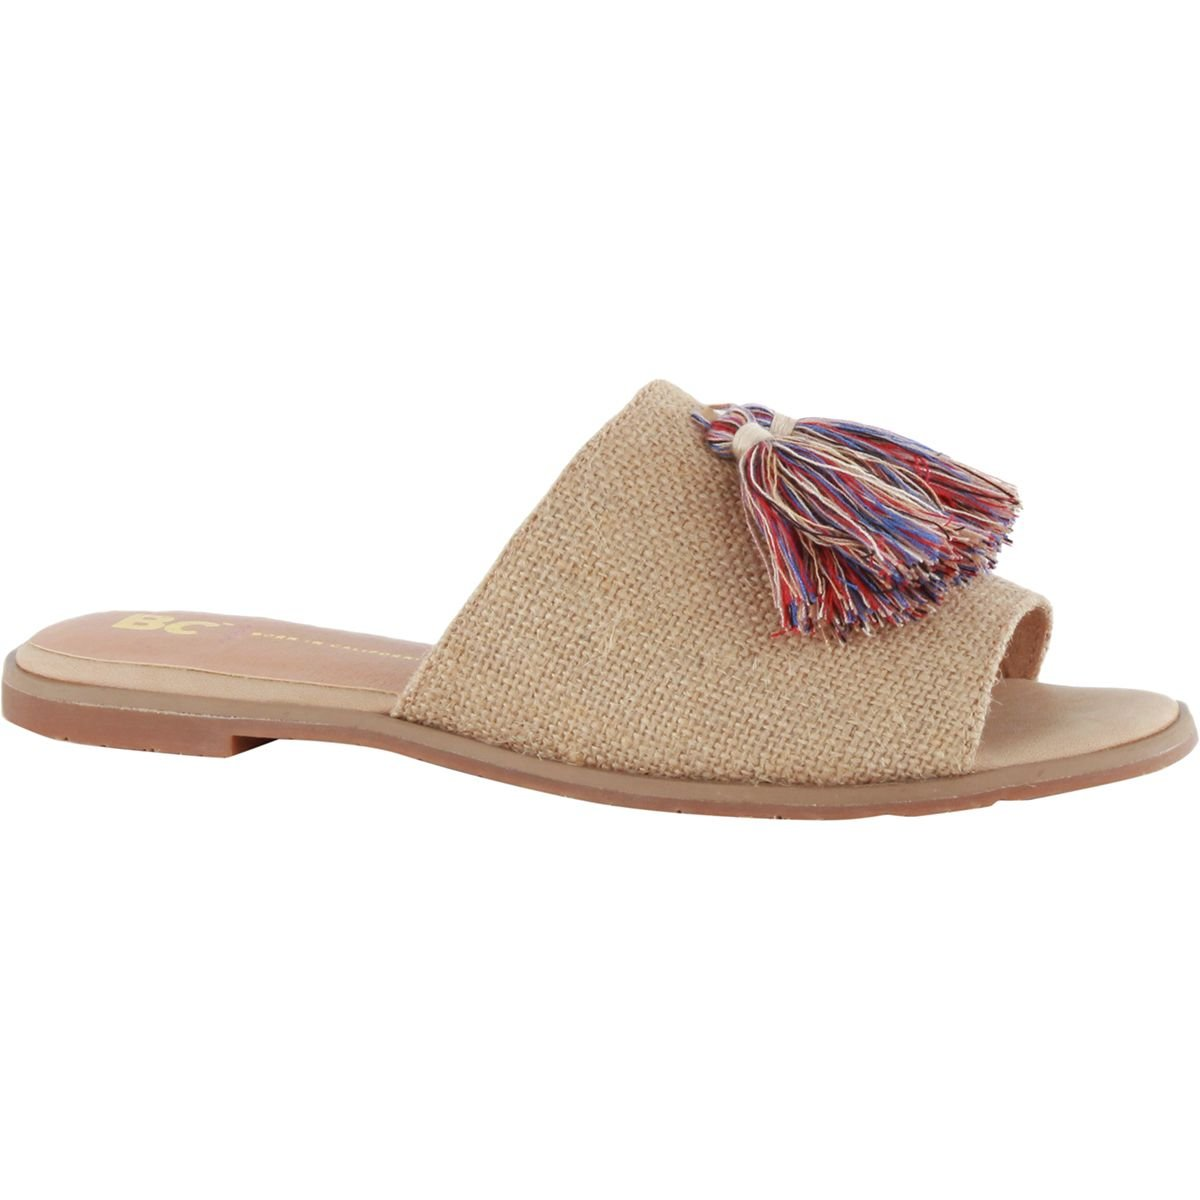 BC Footwear Women's Doin Fine Slide Sandal, Natural Burlap, 8 M US